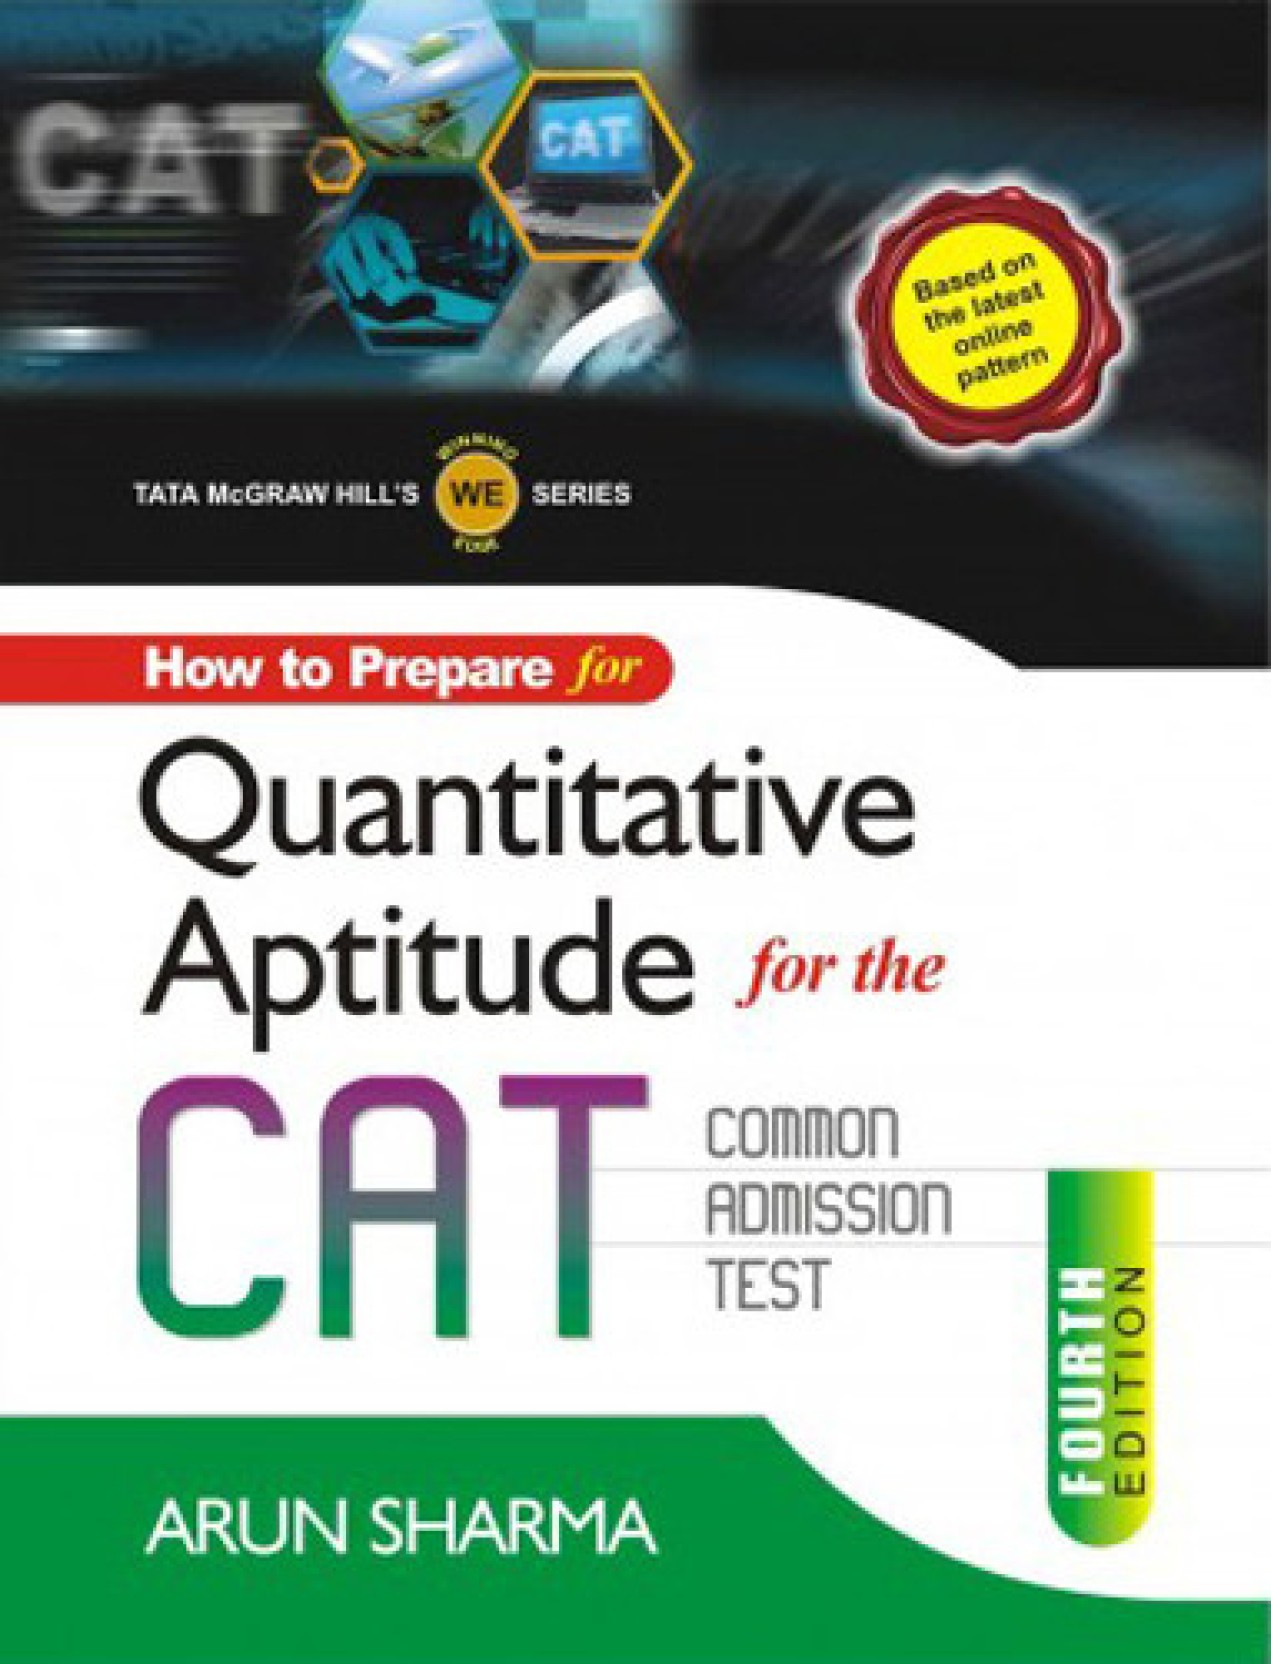 Best Book For Quantitative Aptitude For Cat